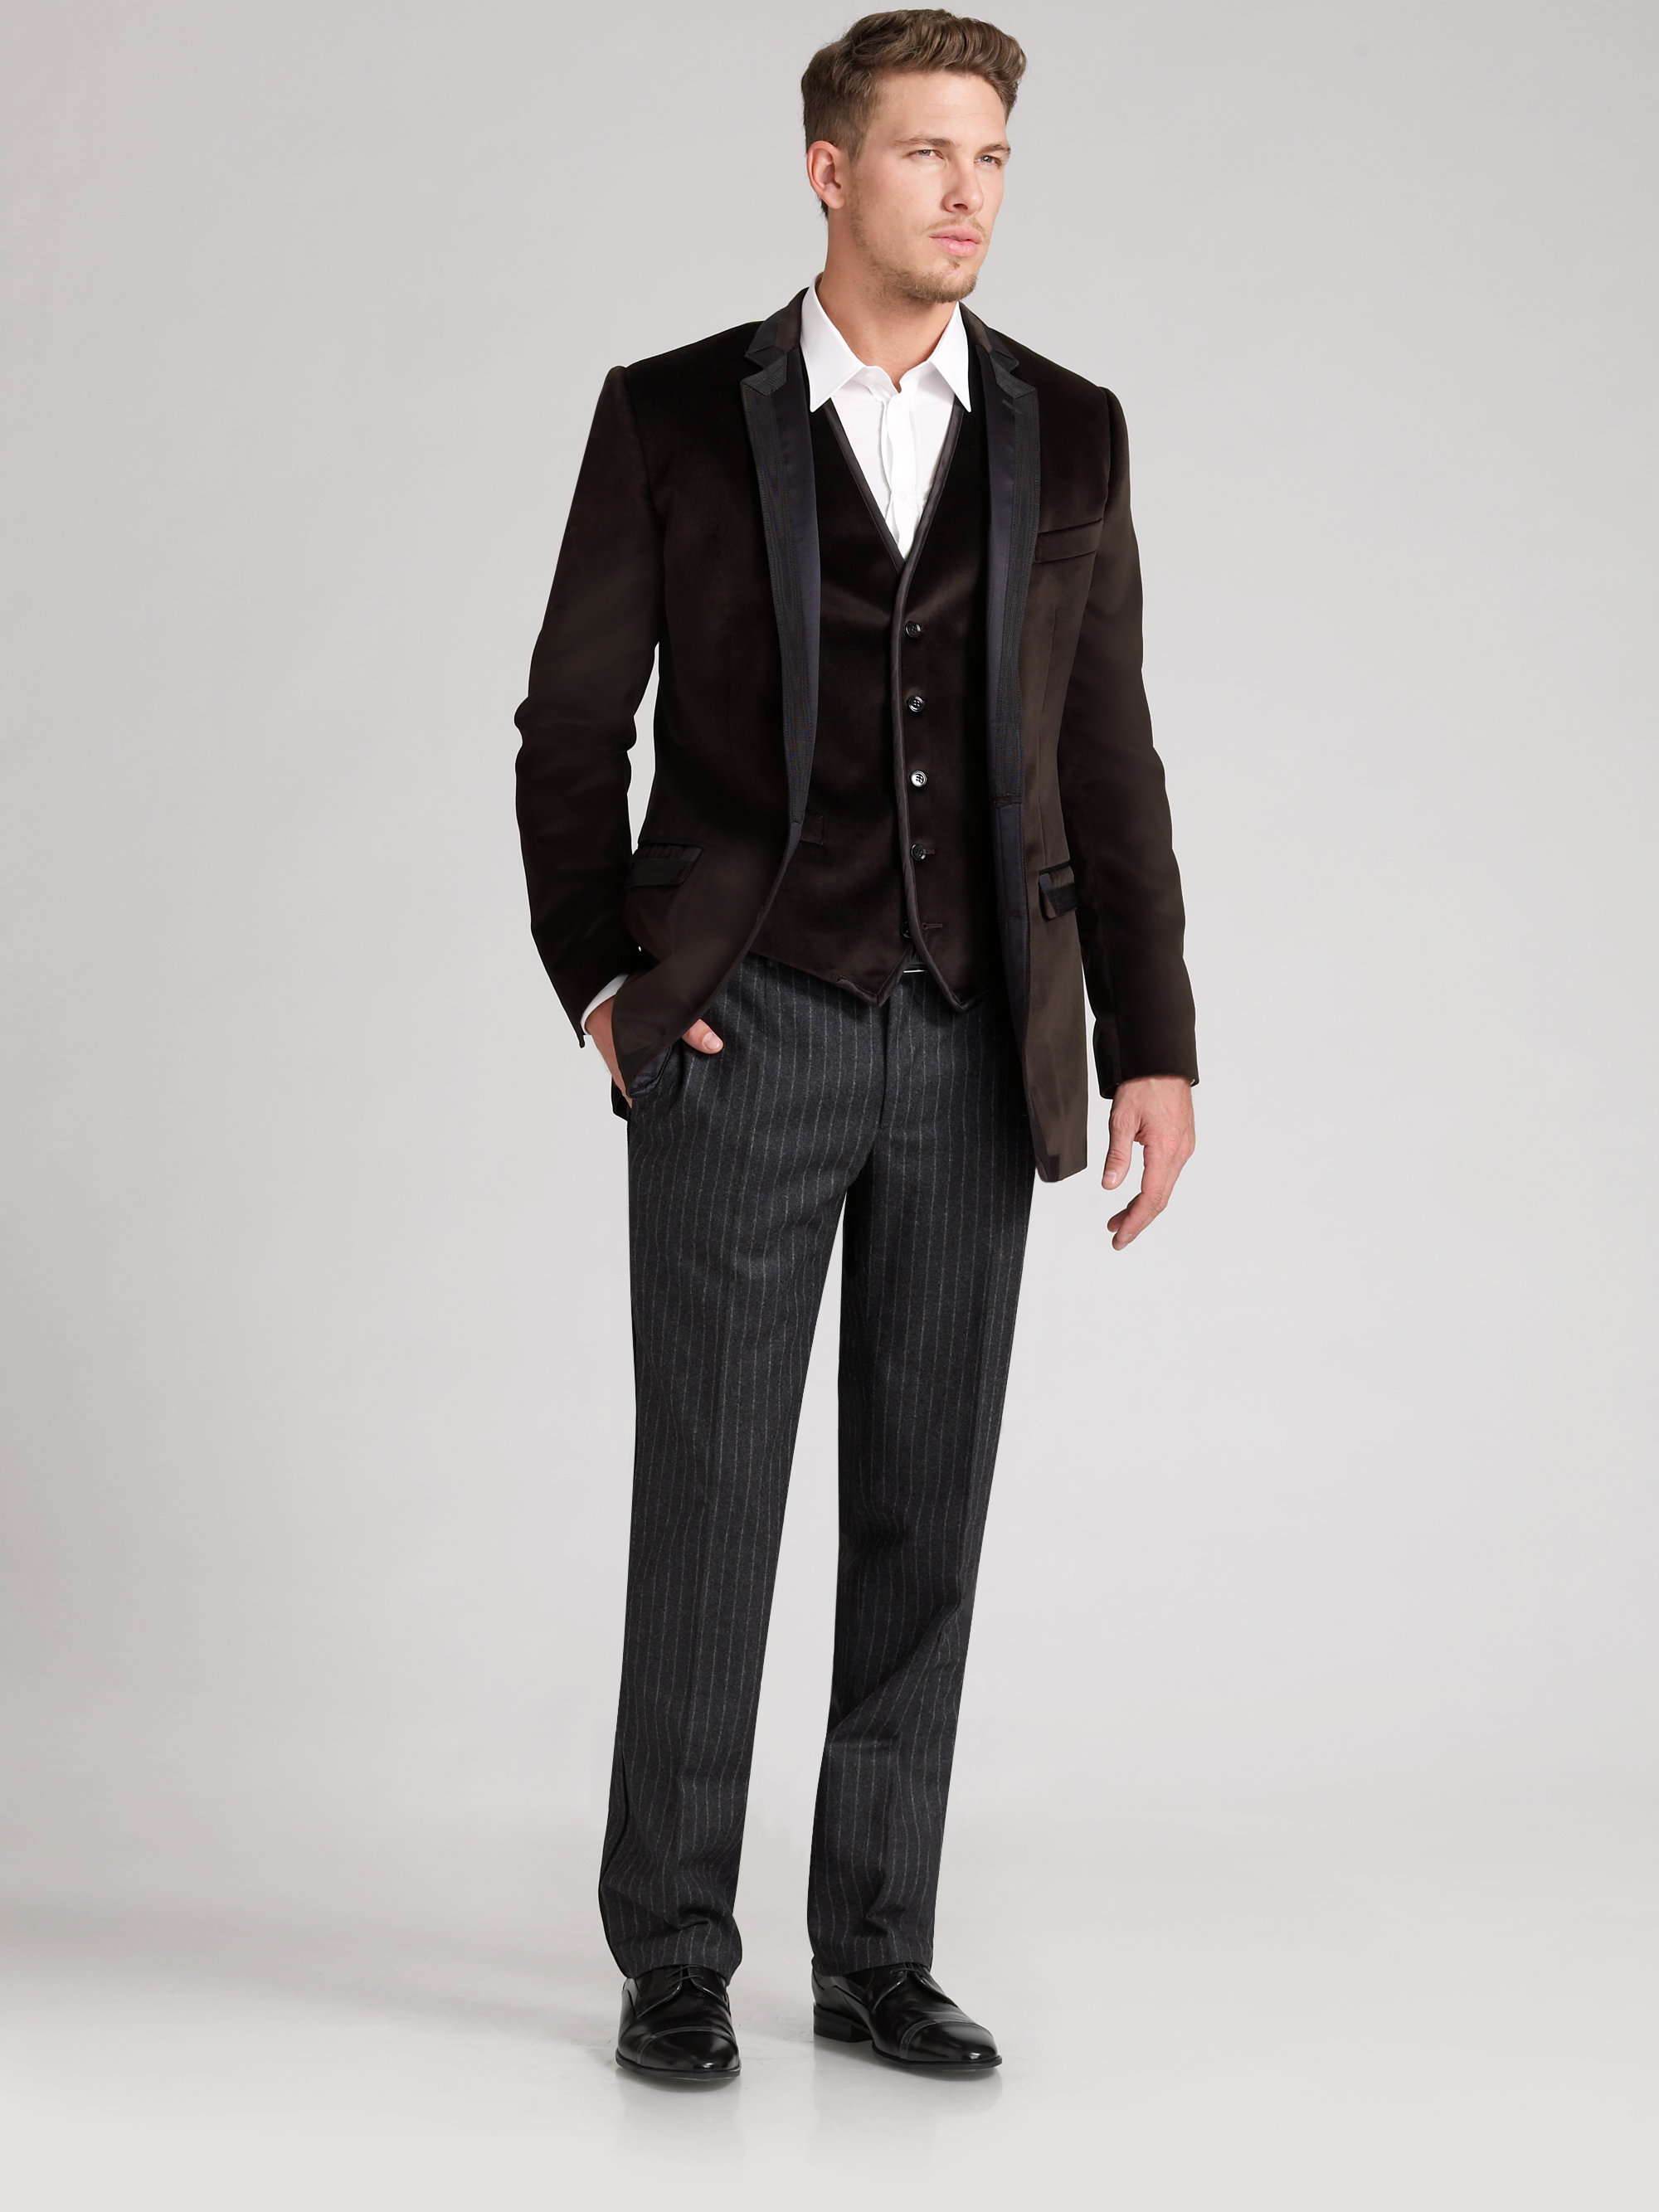 Dolce & gabbana Velvet Blazer in Brown for Men | Lyst